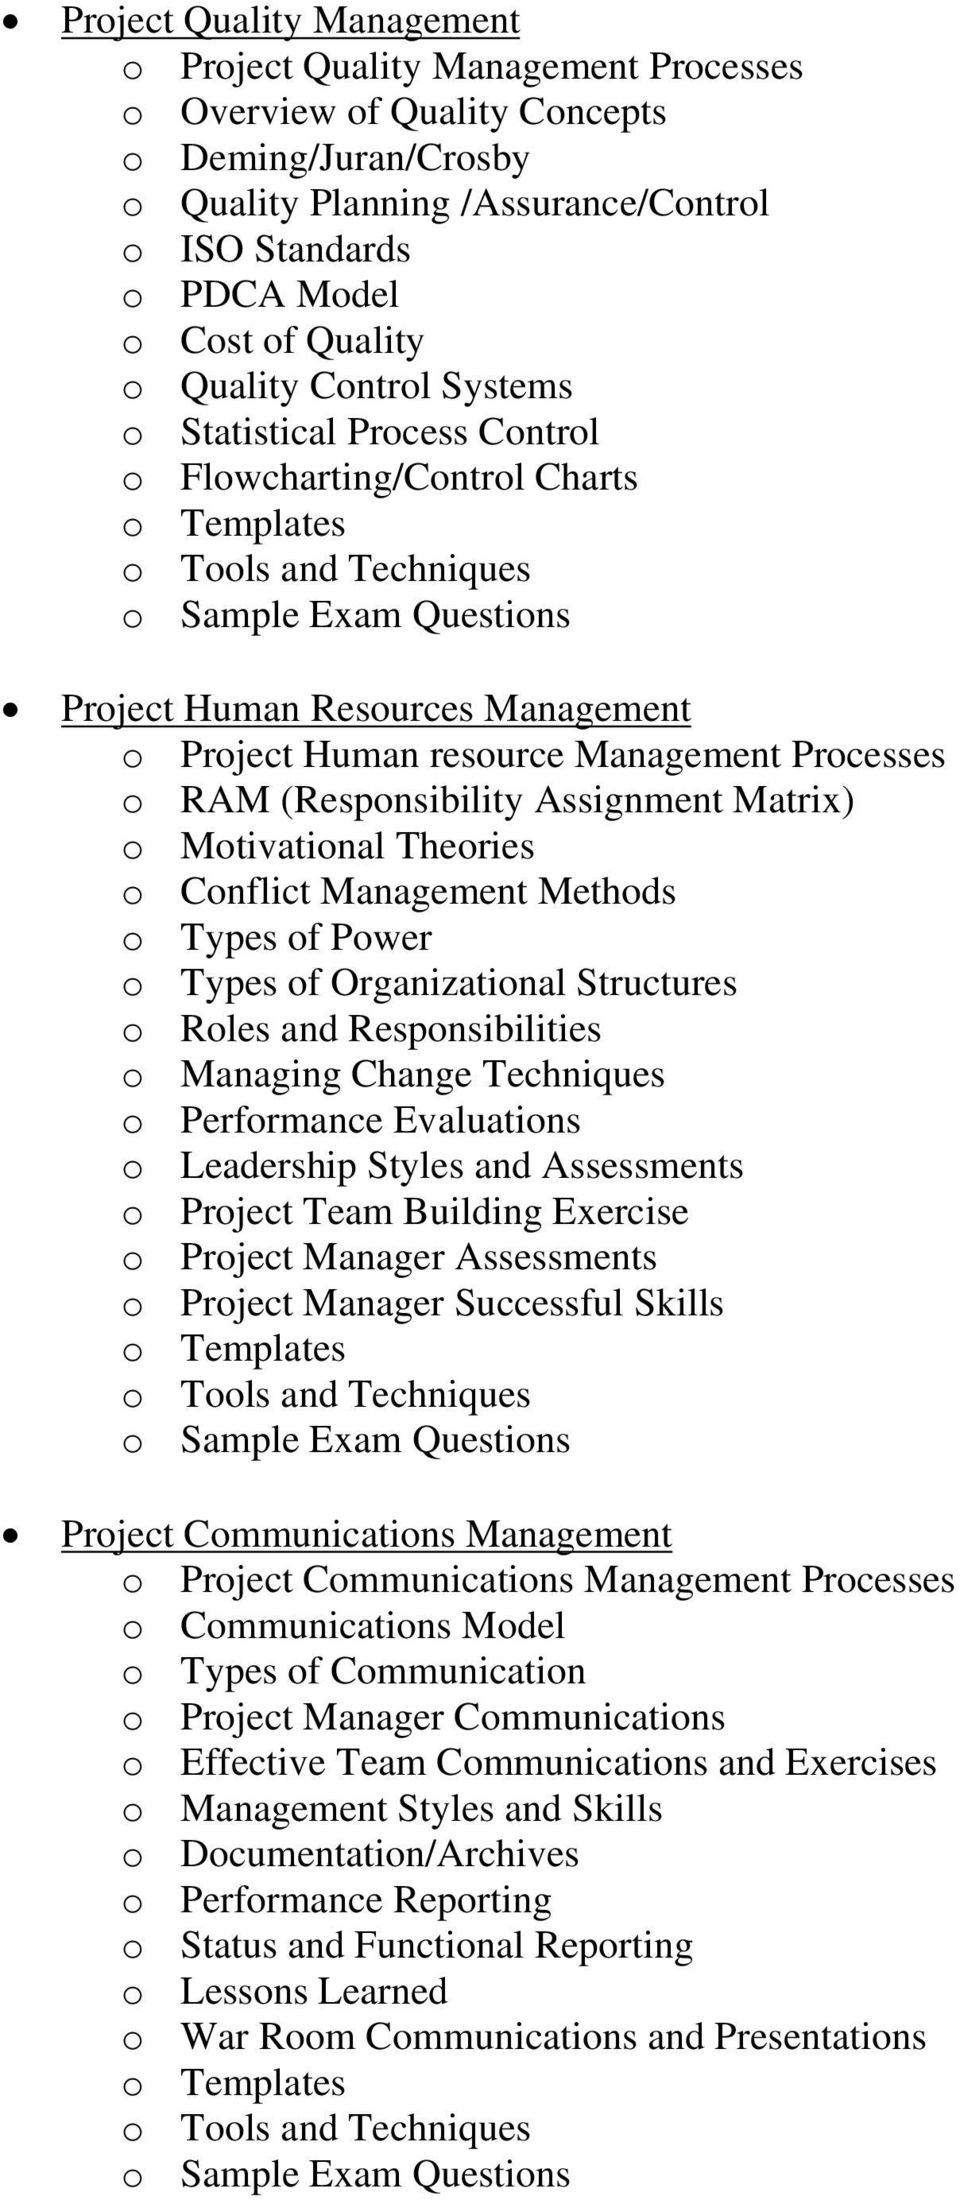 Assignment Matrix) o Motivational Theories o Conflict Management Methods o Types of Power o Types of Organizational Structures o Roles and Responsibilities o Managing Change Techniques o Performance